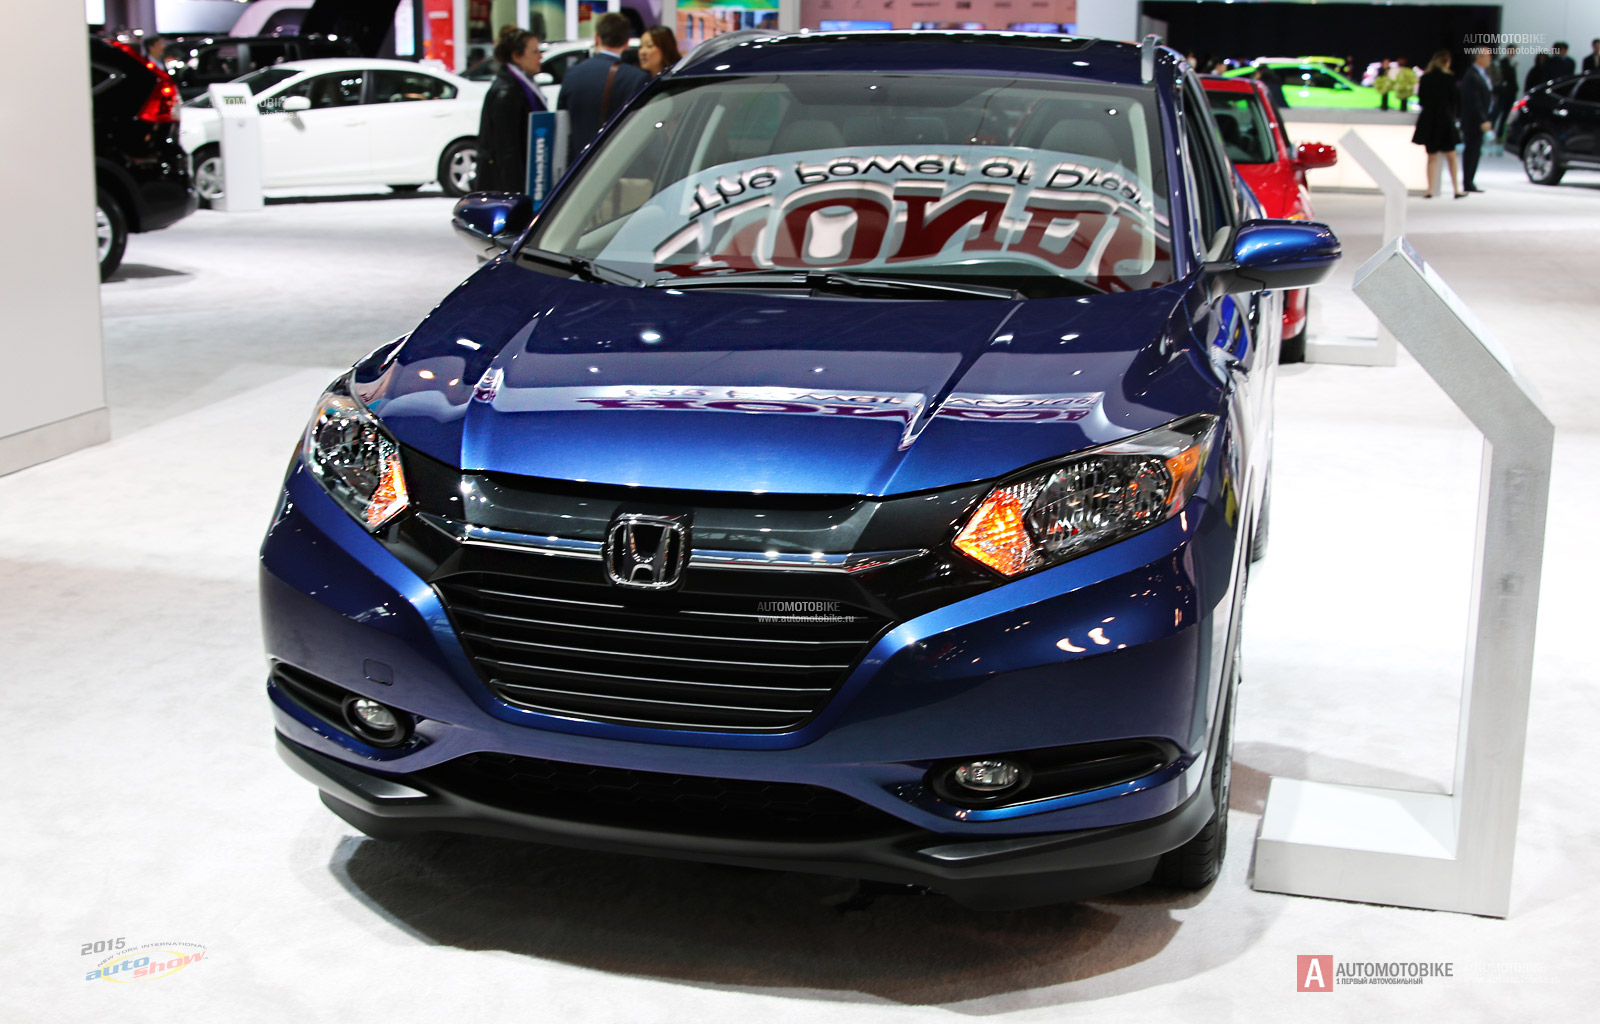 Honda HR-V at New York Auto Show 2015 photo and review